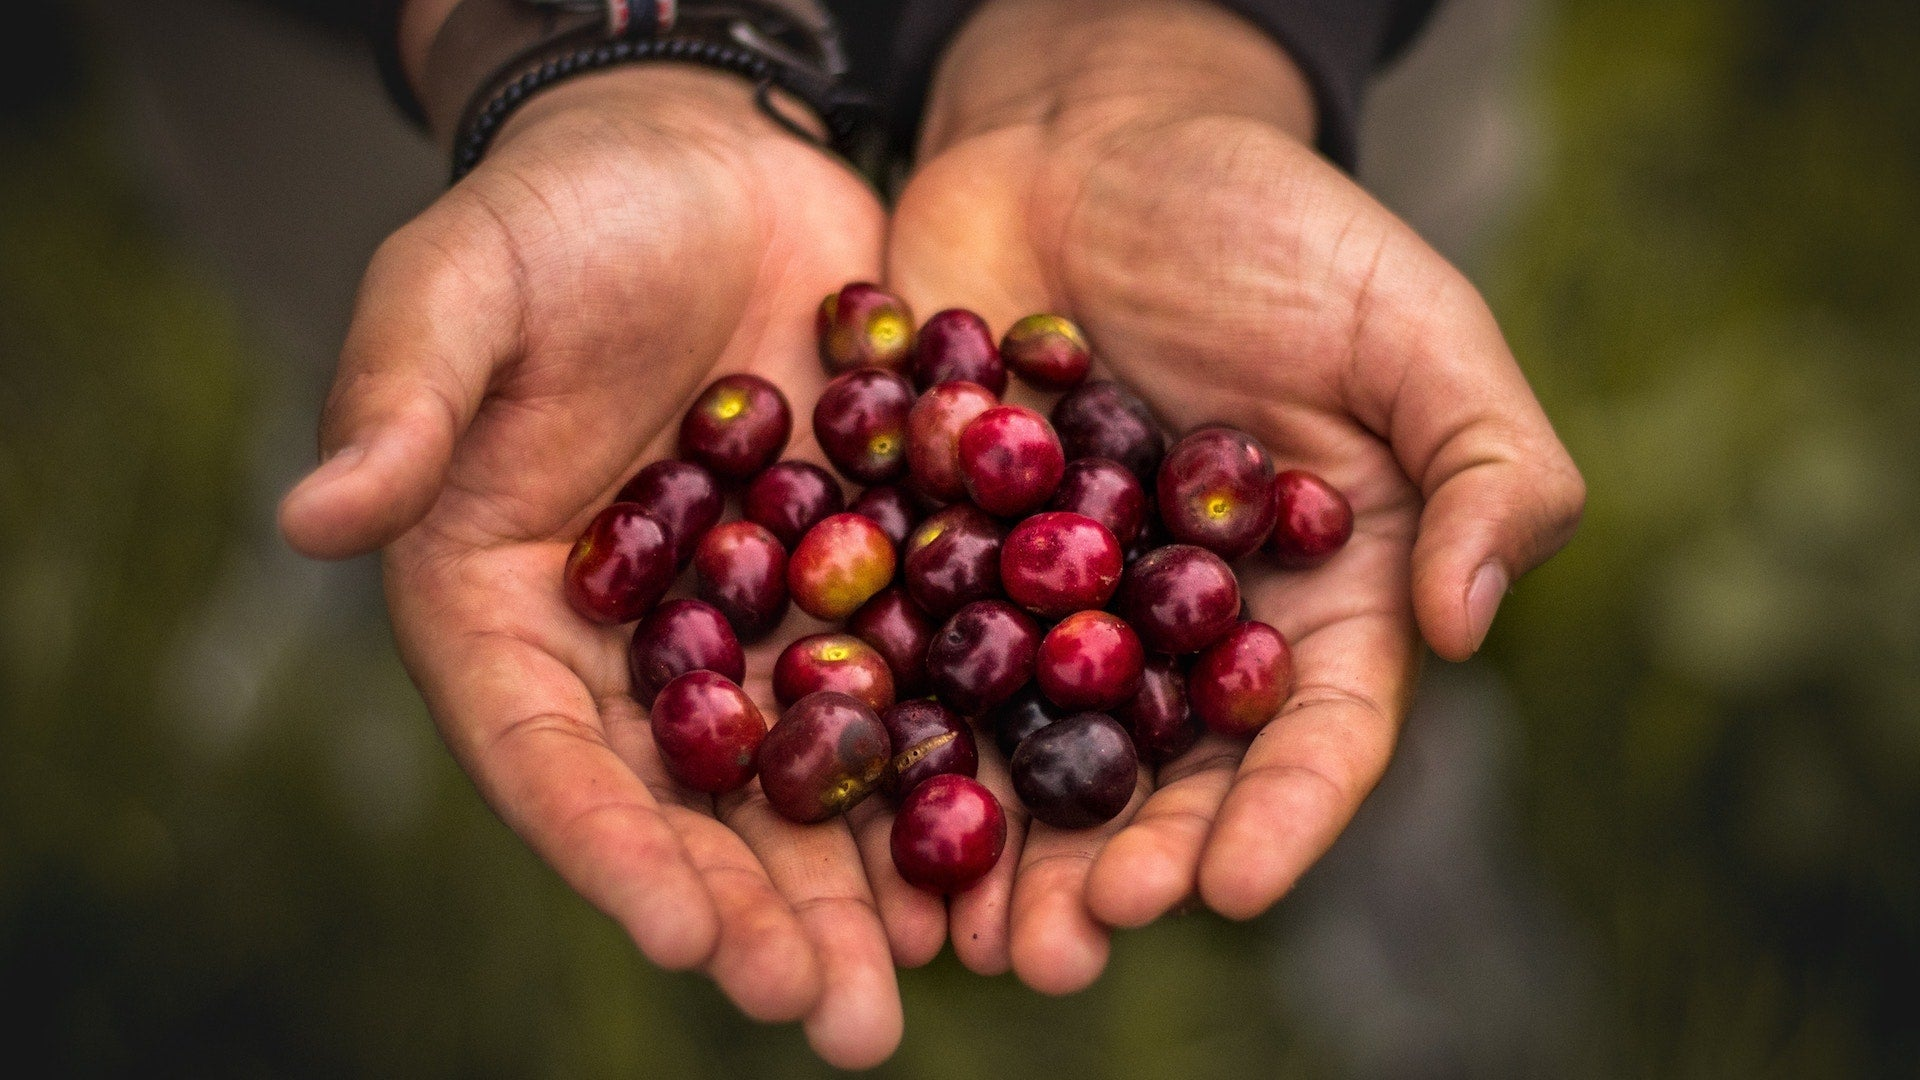 Victor Allen's Coffee Berries in Hands